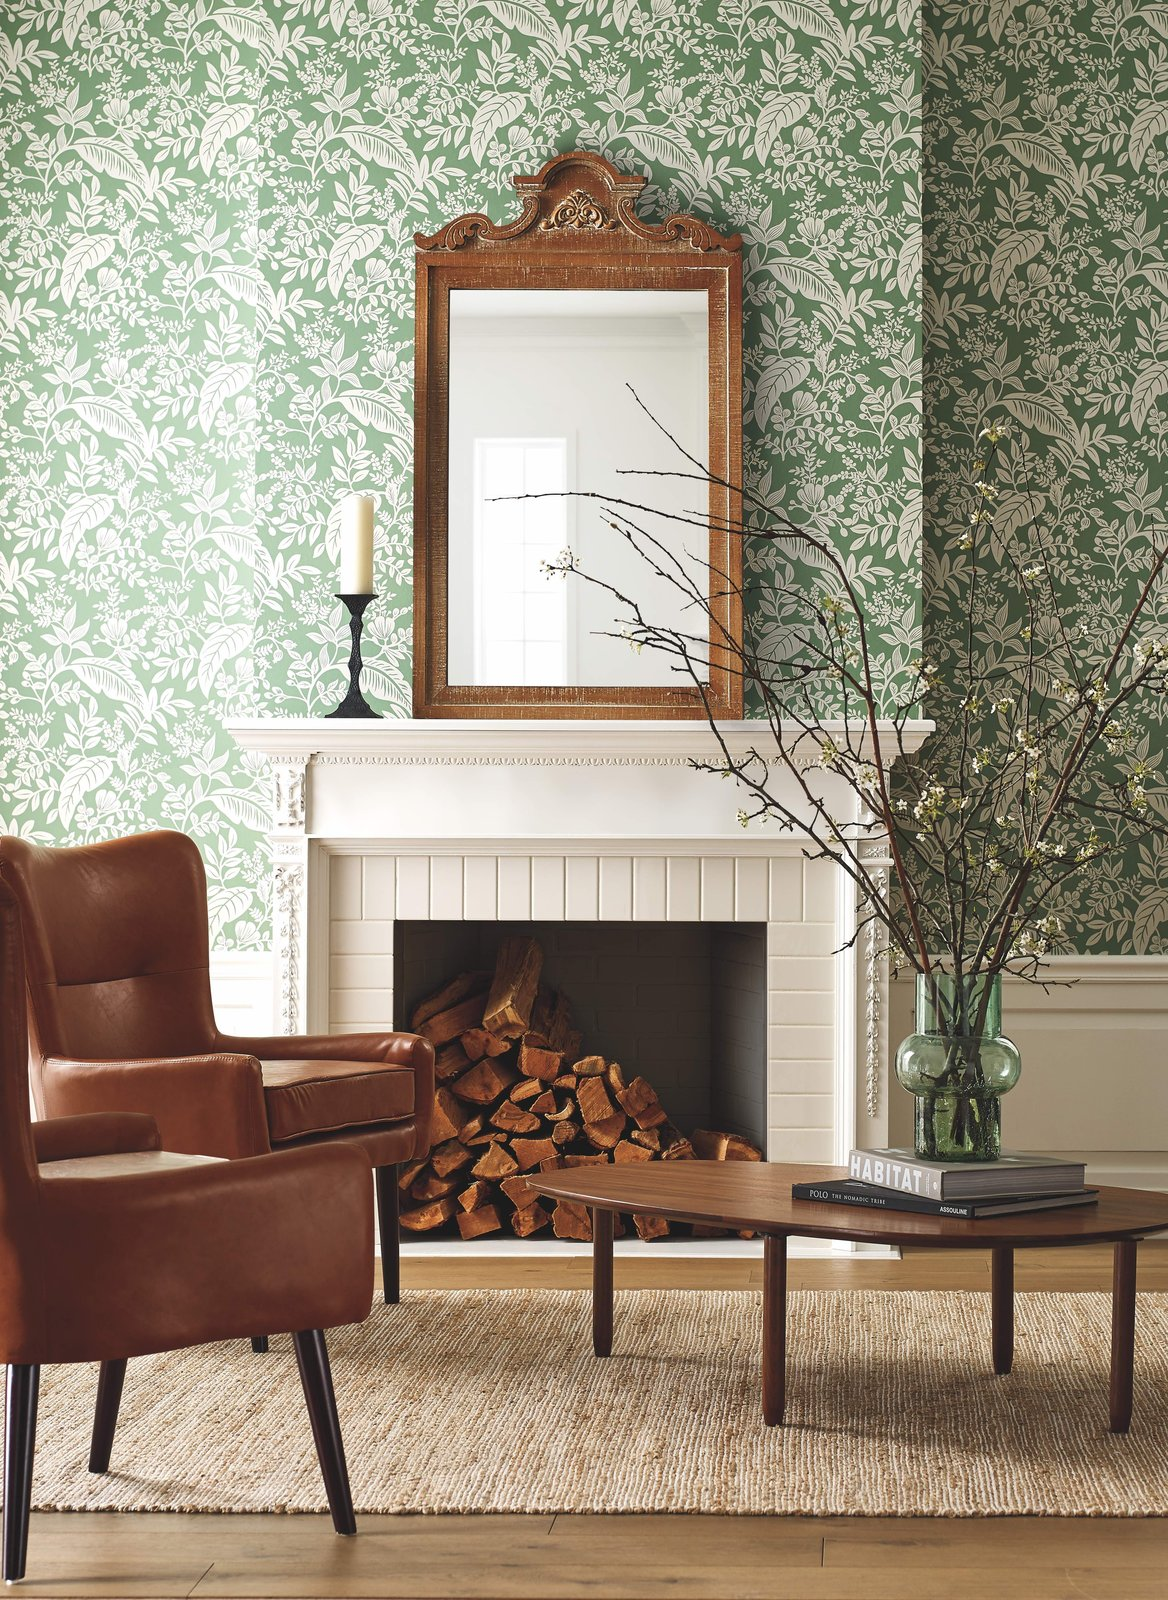 Photo 2 of 3 in Wallpaper Your Way to a Whimsical Home With Rifle Paper Co.'s New Offerings